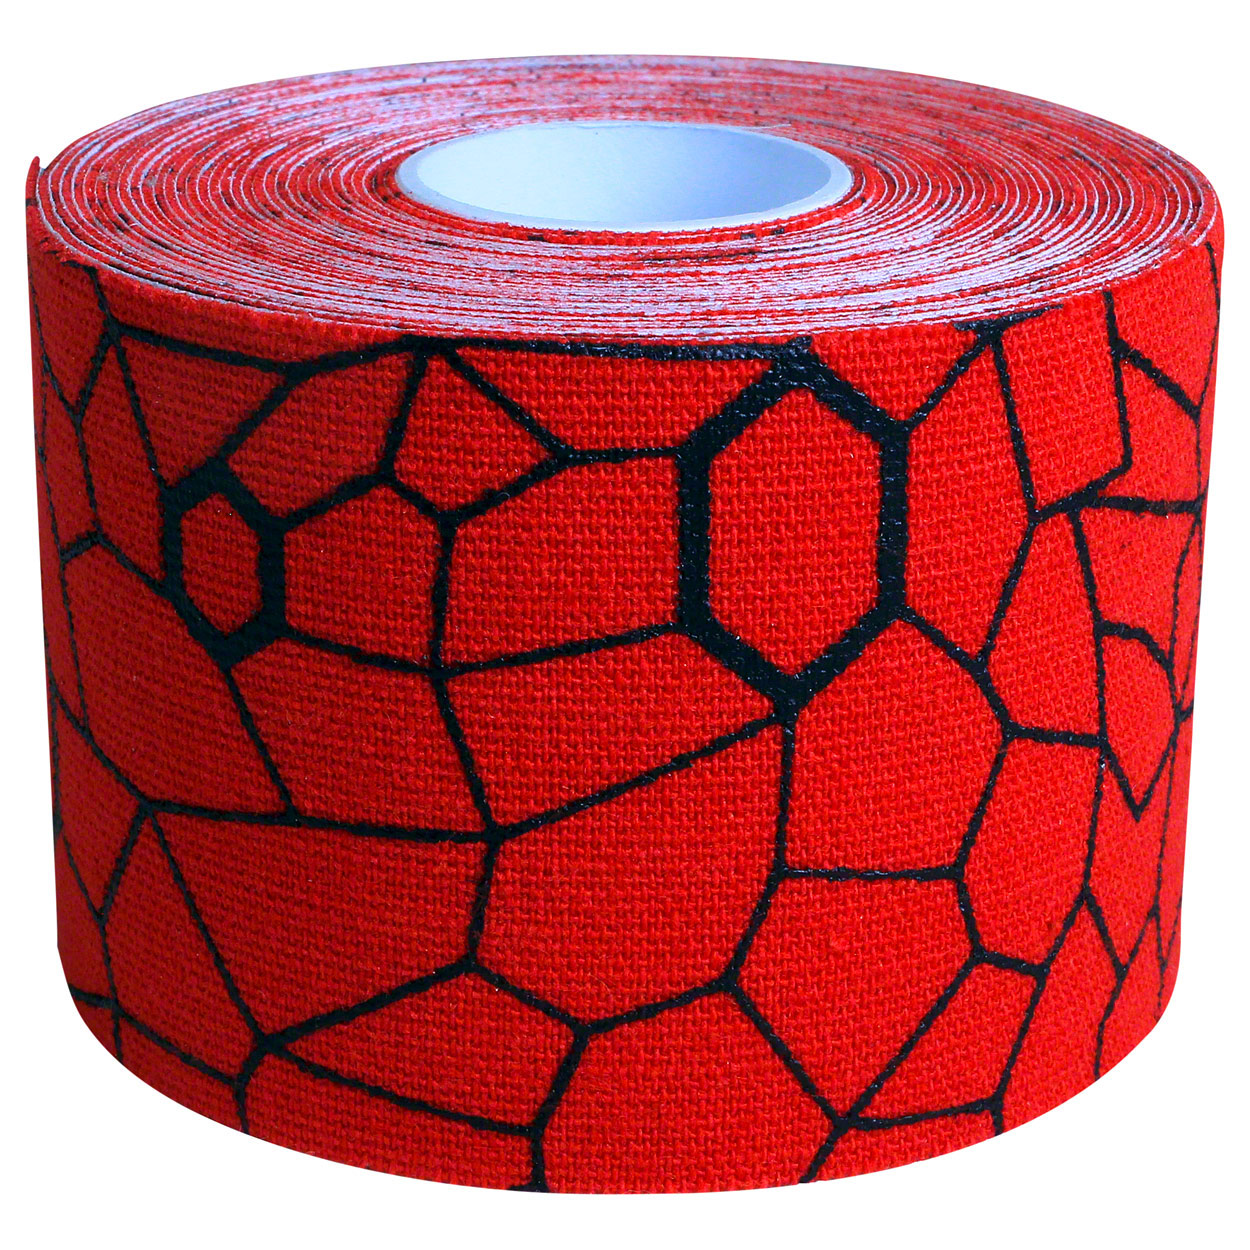 Kunden KW 2016: Thera-Band Kinesiology Tape XactStretch, 5 m x 5 cm, rot/schwarz